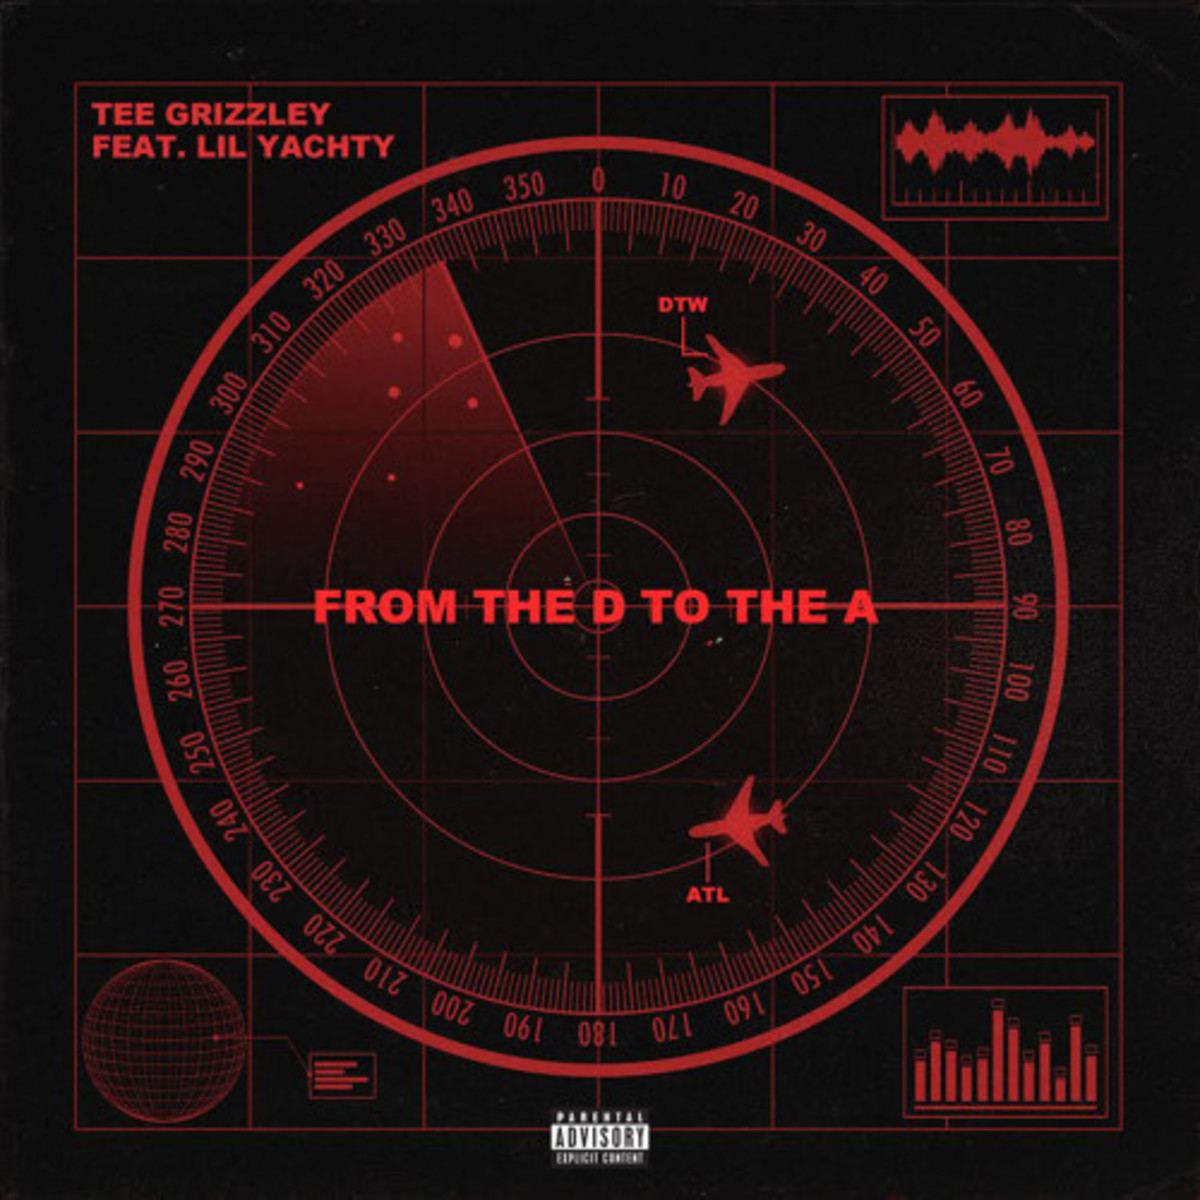 tee-grizzley-from-the-d-to-the-a.jpg